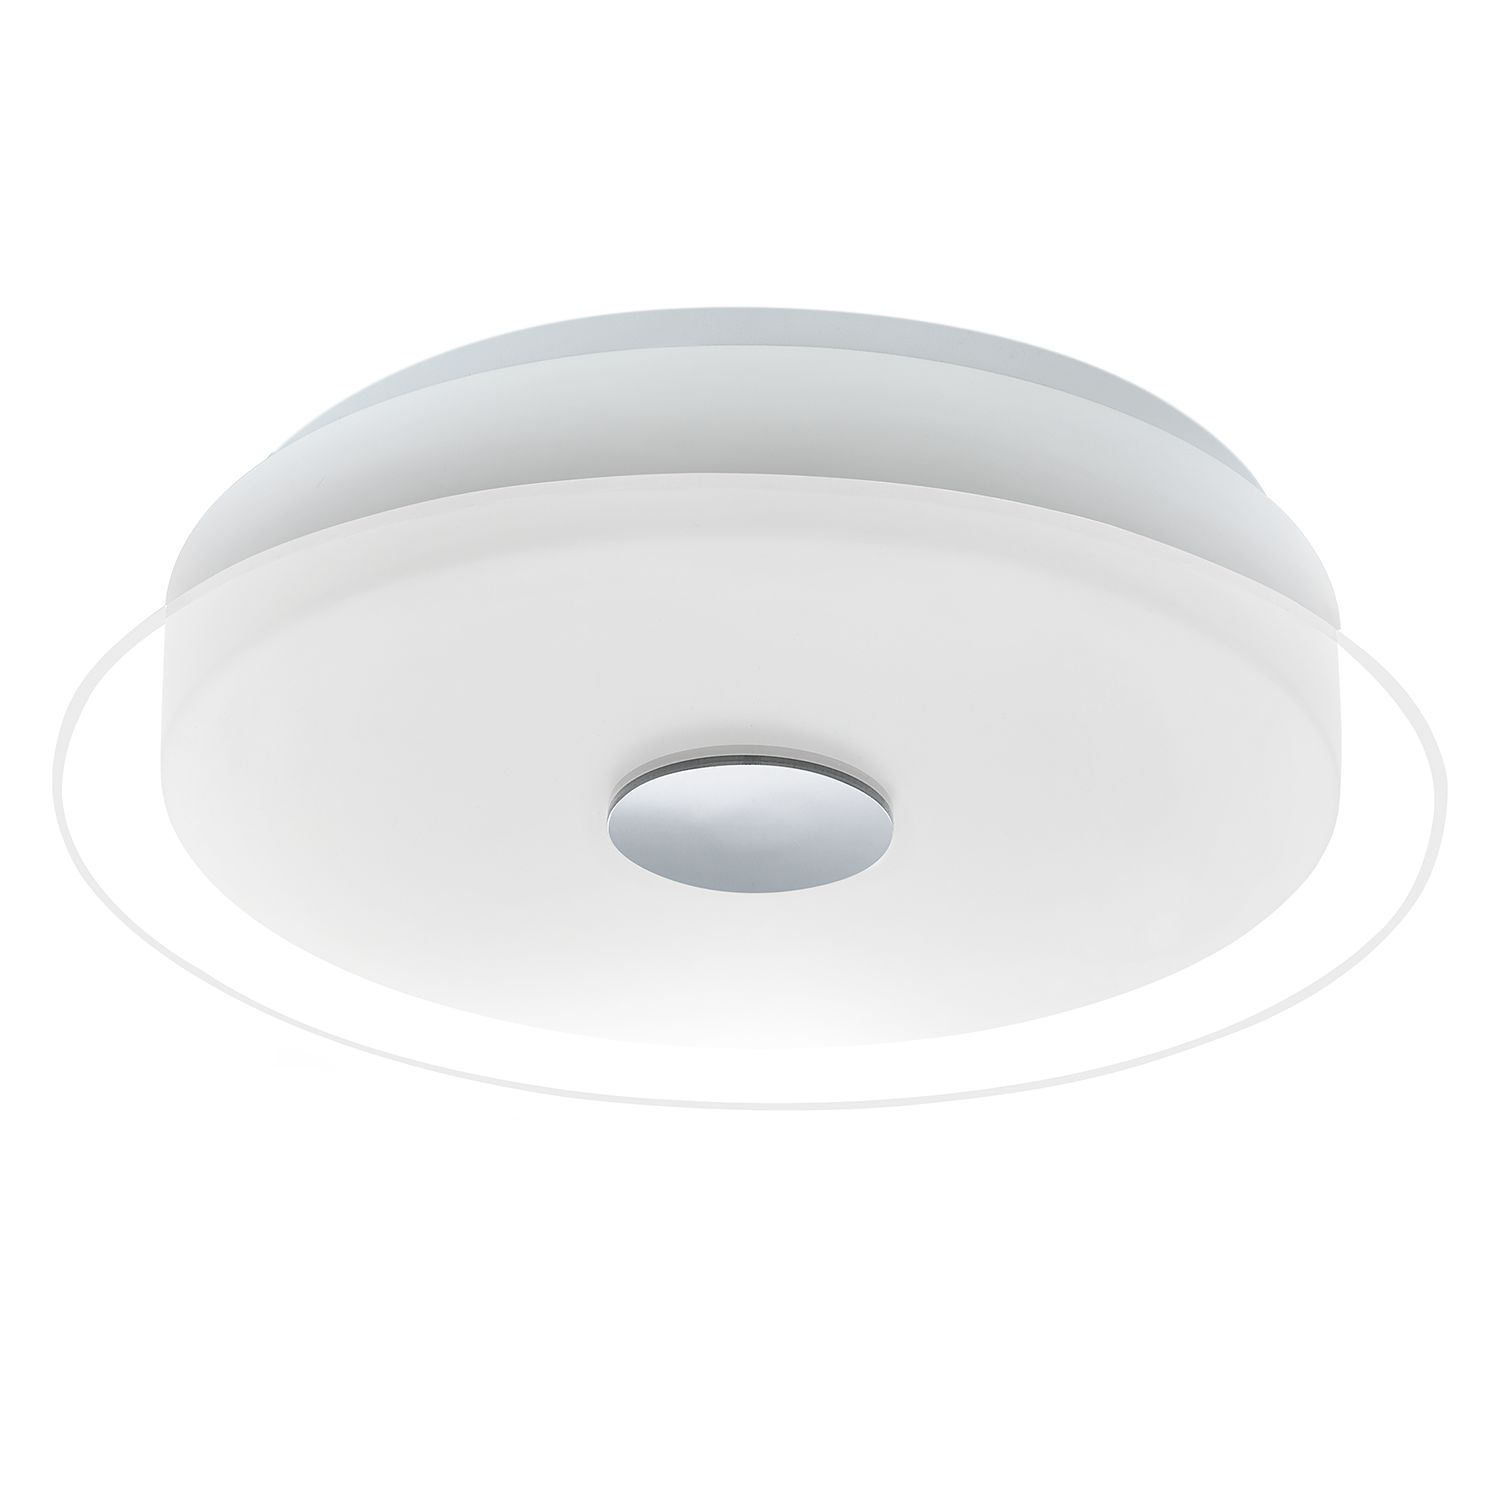 home24 LED-Wandleuchte Parell